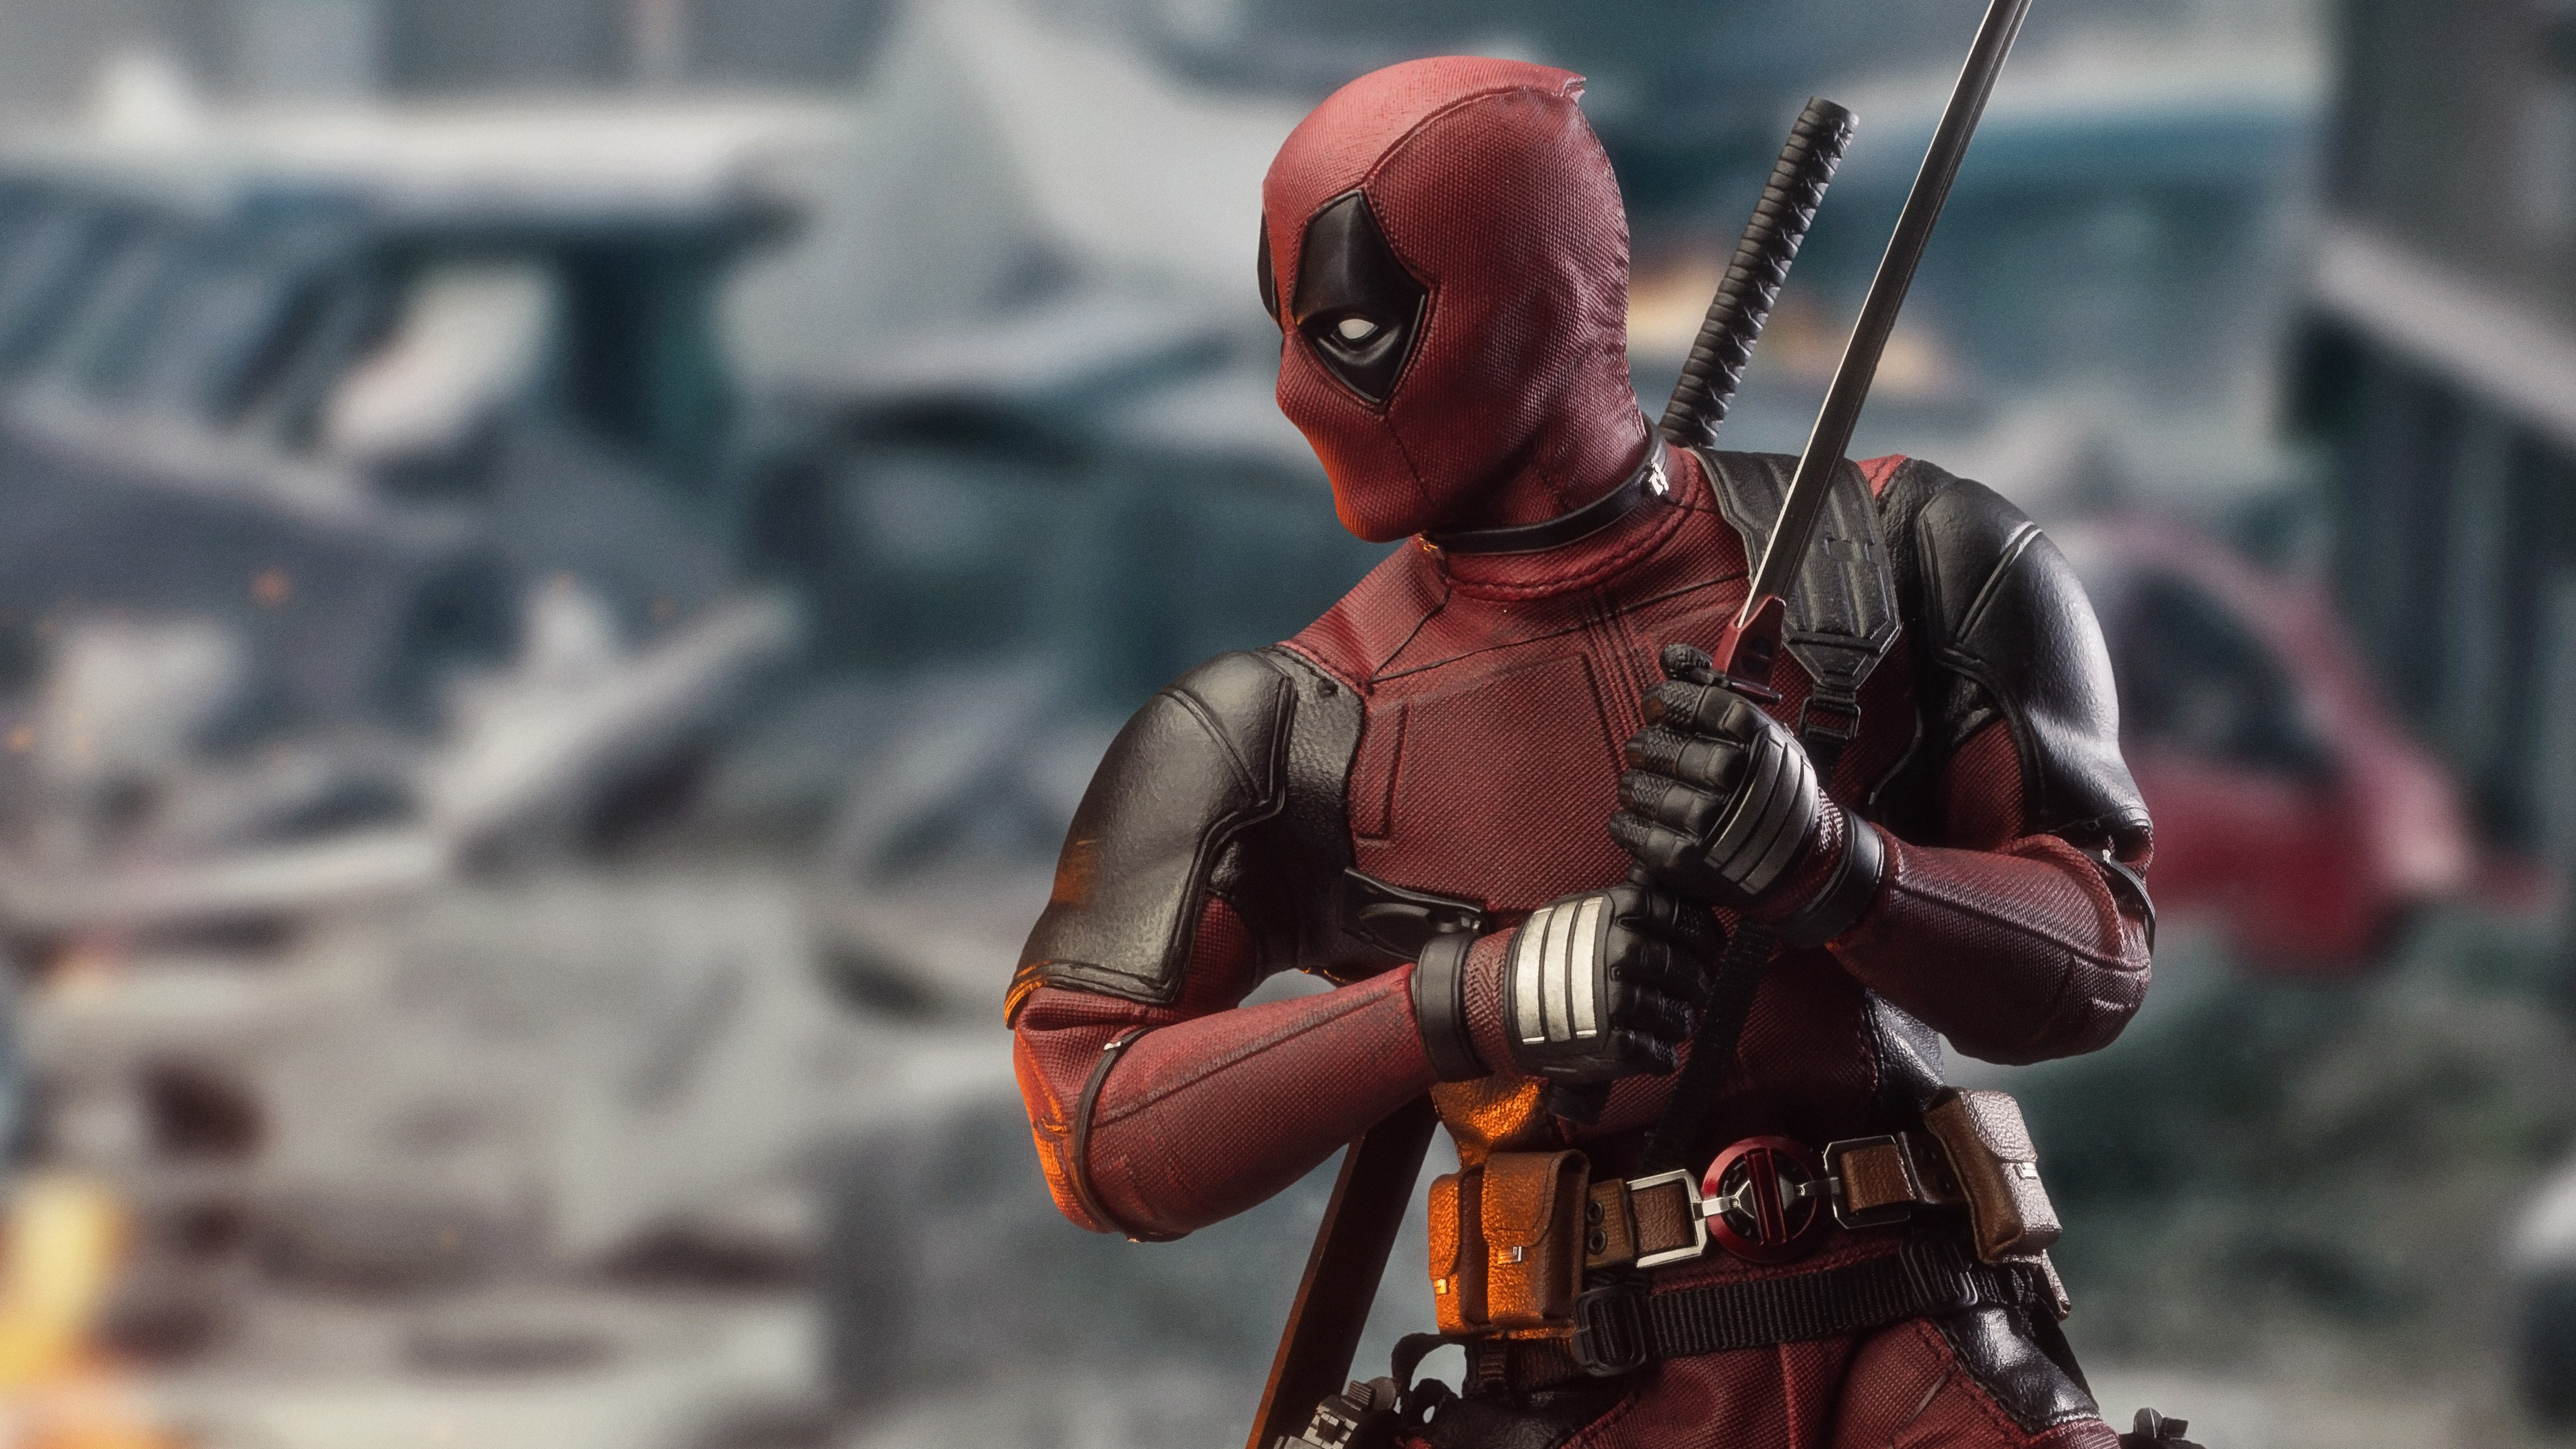 3840x2160 Deadpool 2 New 4k HD 4k Wallpapers, Images ...